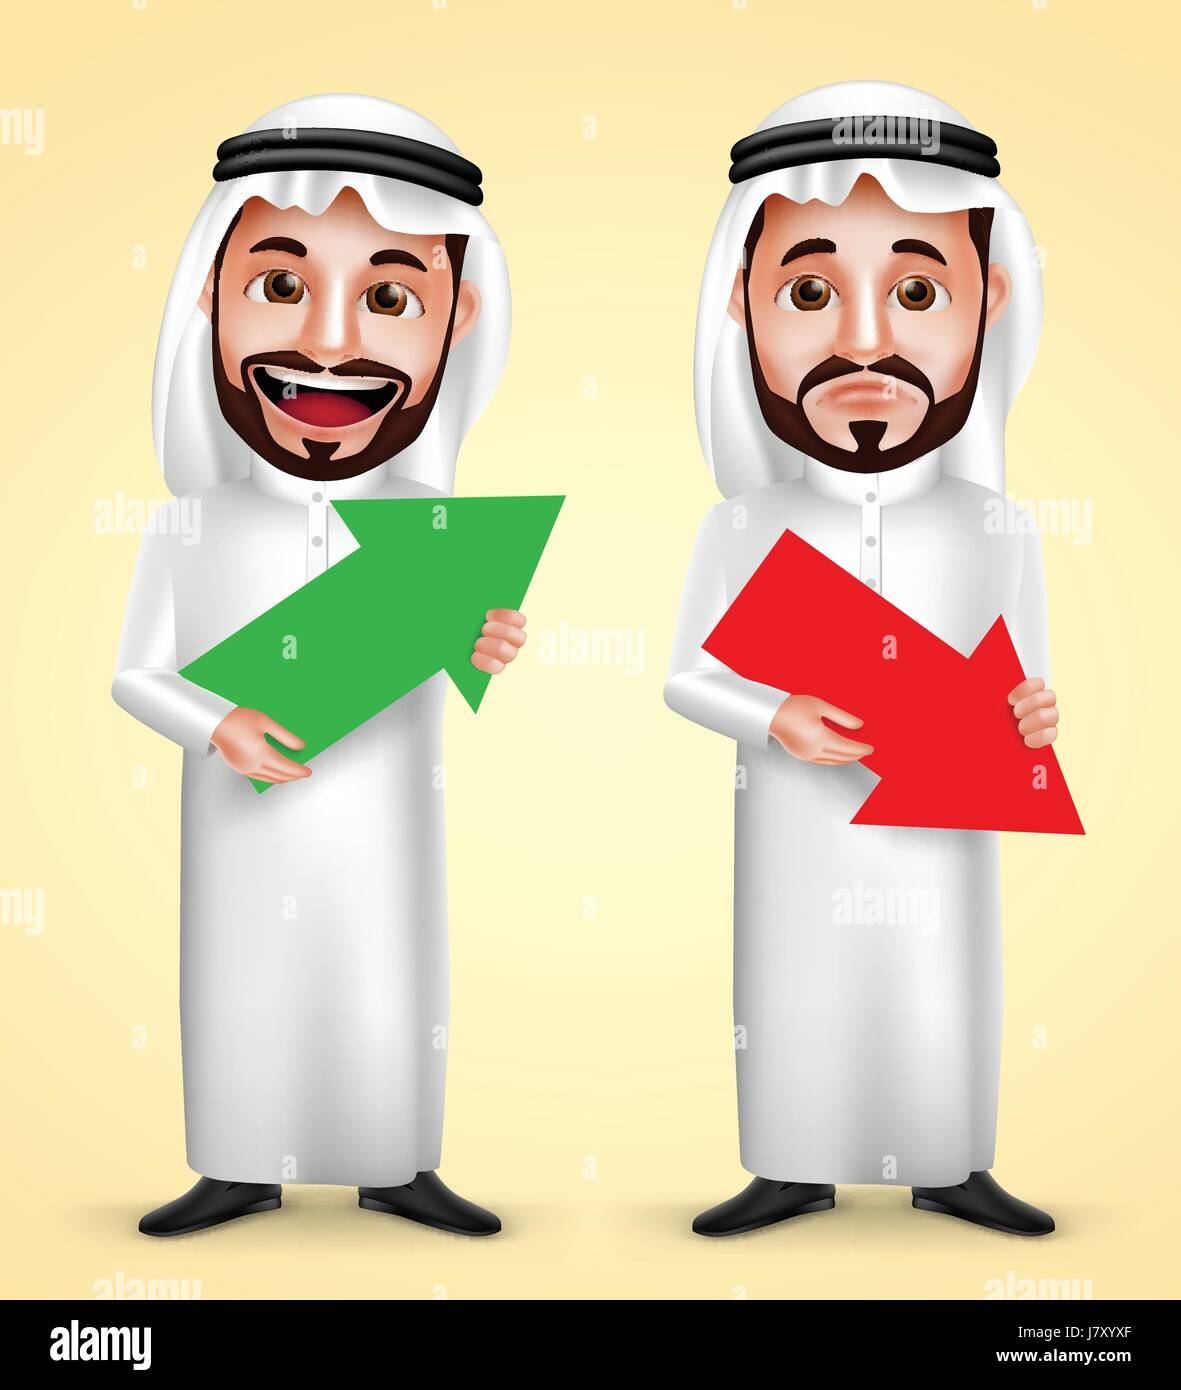 Saudi Arab man vector character wearing white traditional dress with facial expressions holding up and down arrow - Stock Image